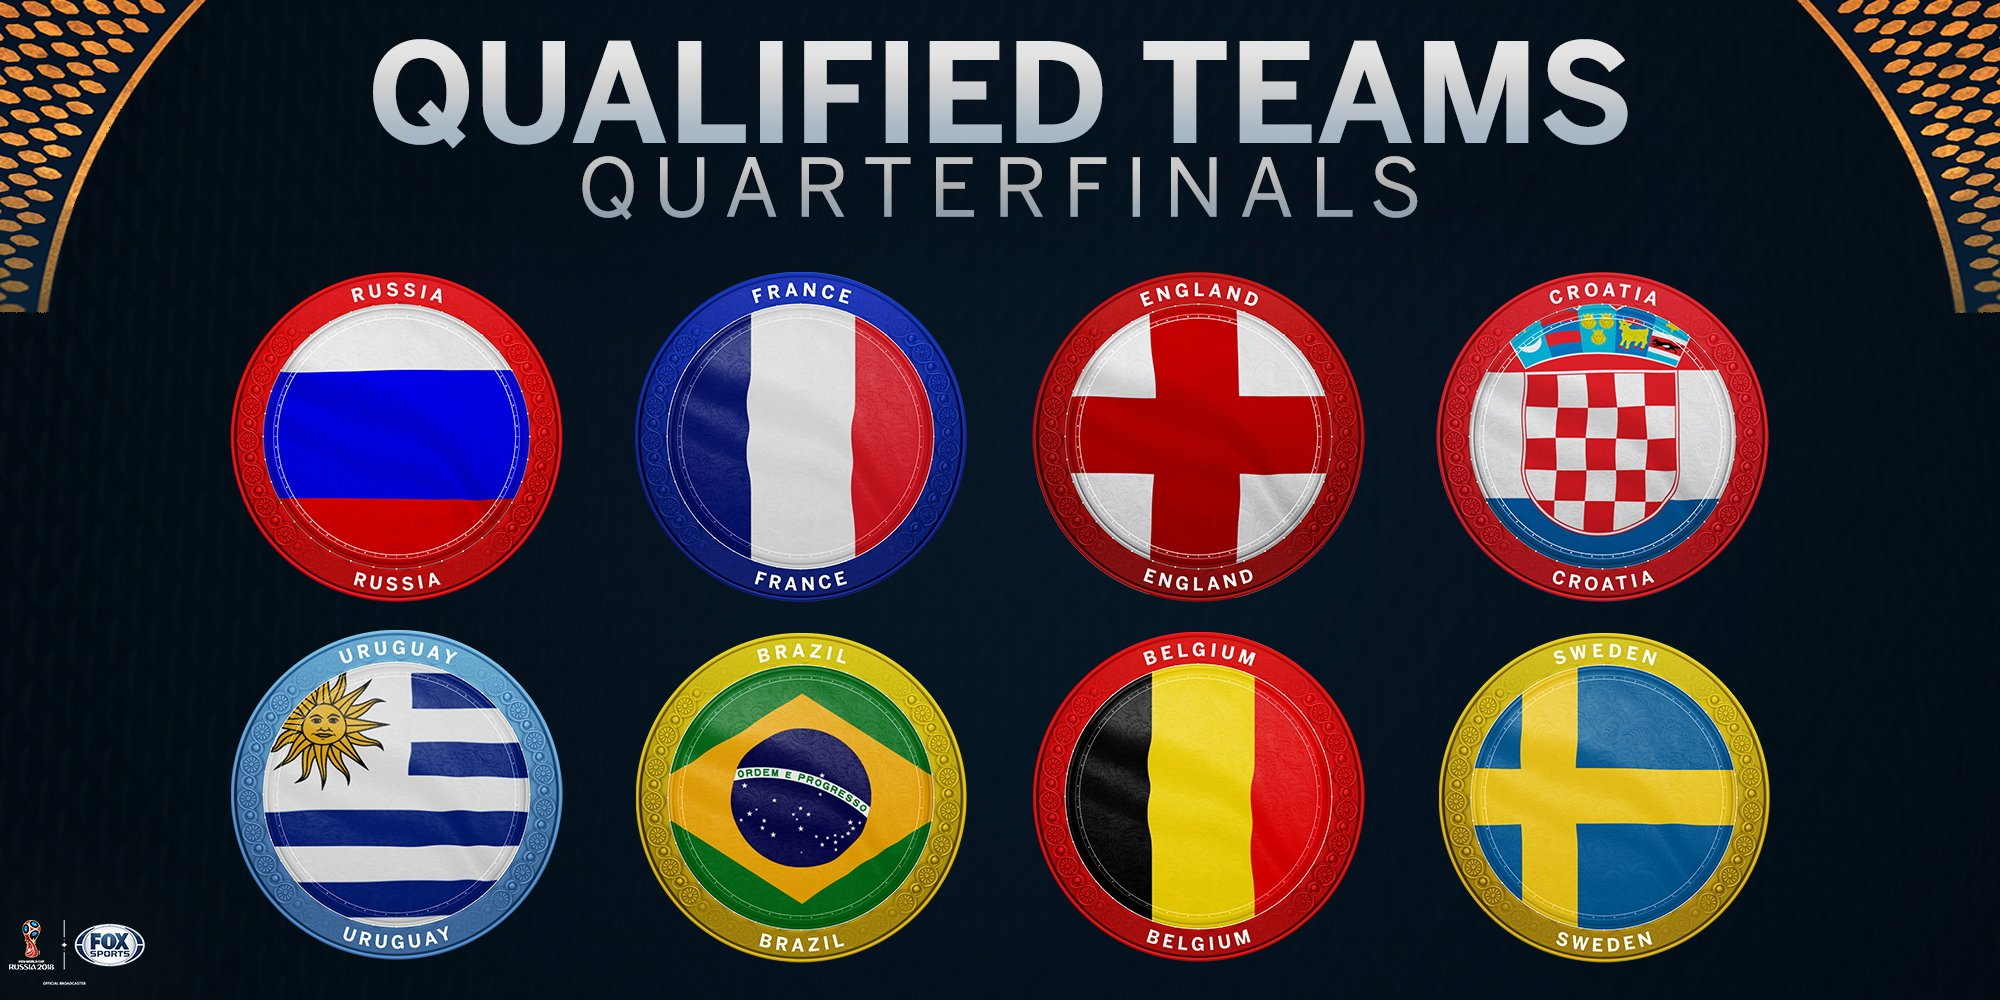 One of these teams will win the 2018 FIFA World Cup. https://t.co/GgcsDkcfpC